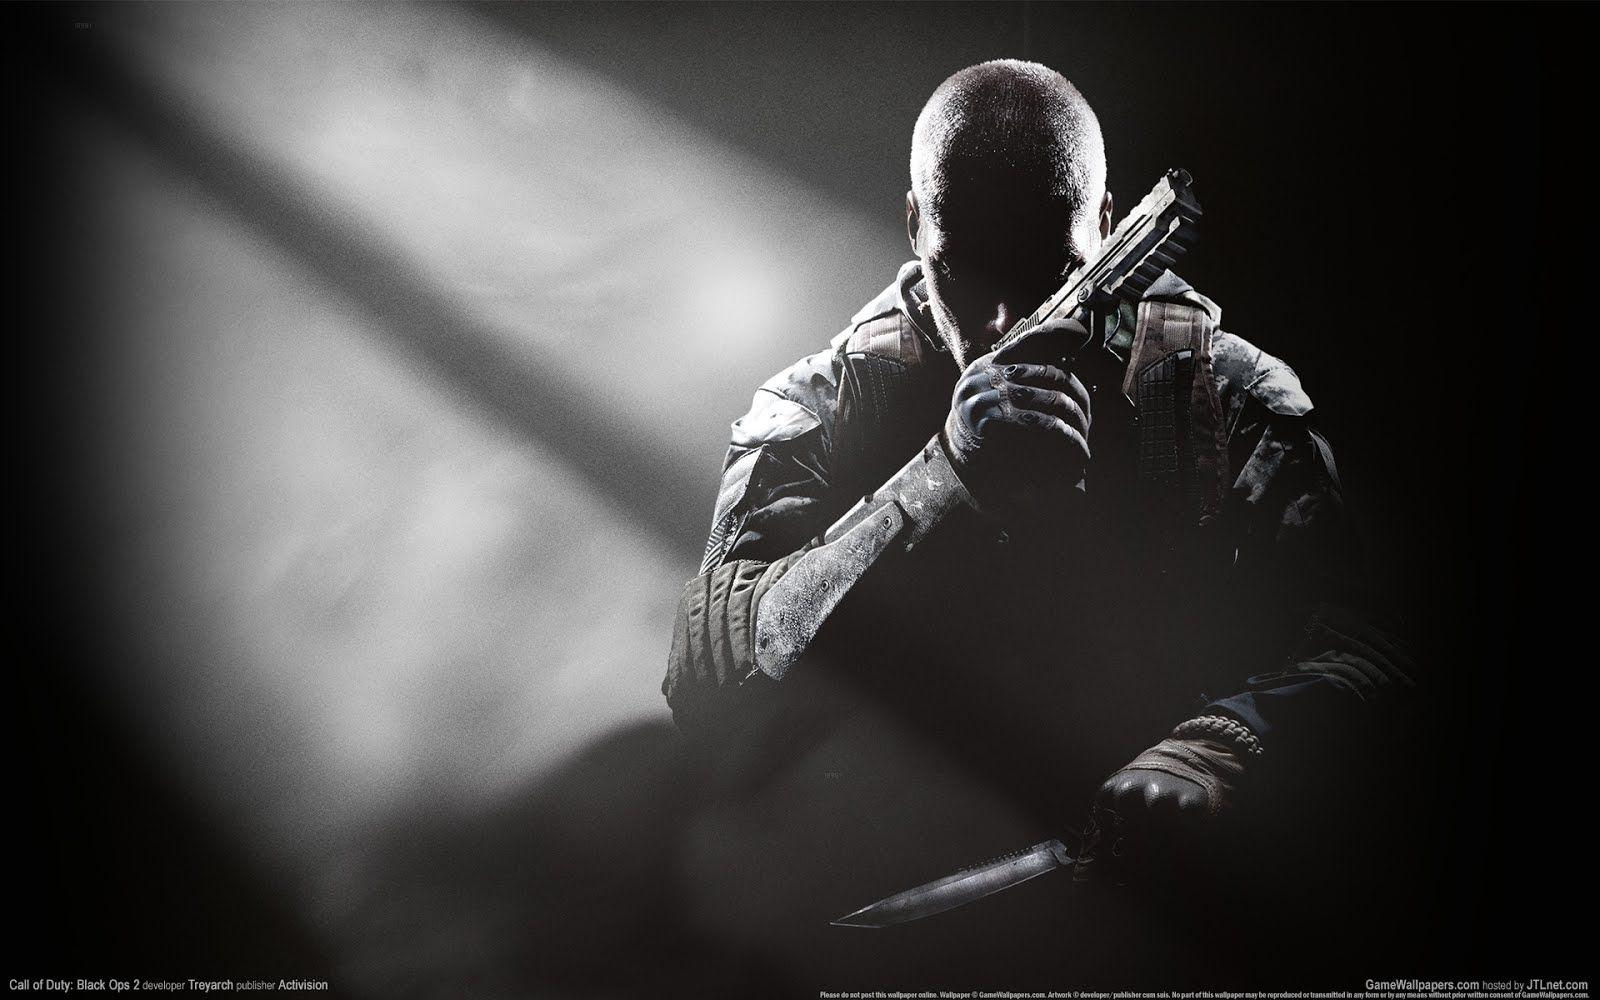 Call of Duty Black Ops II Wallpapers Free Download